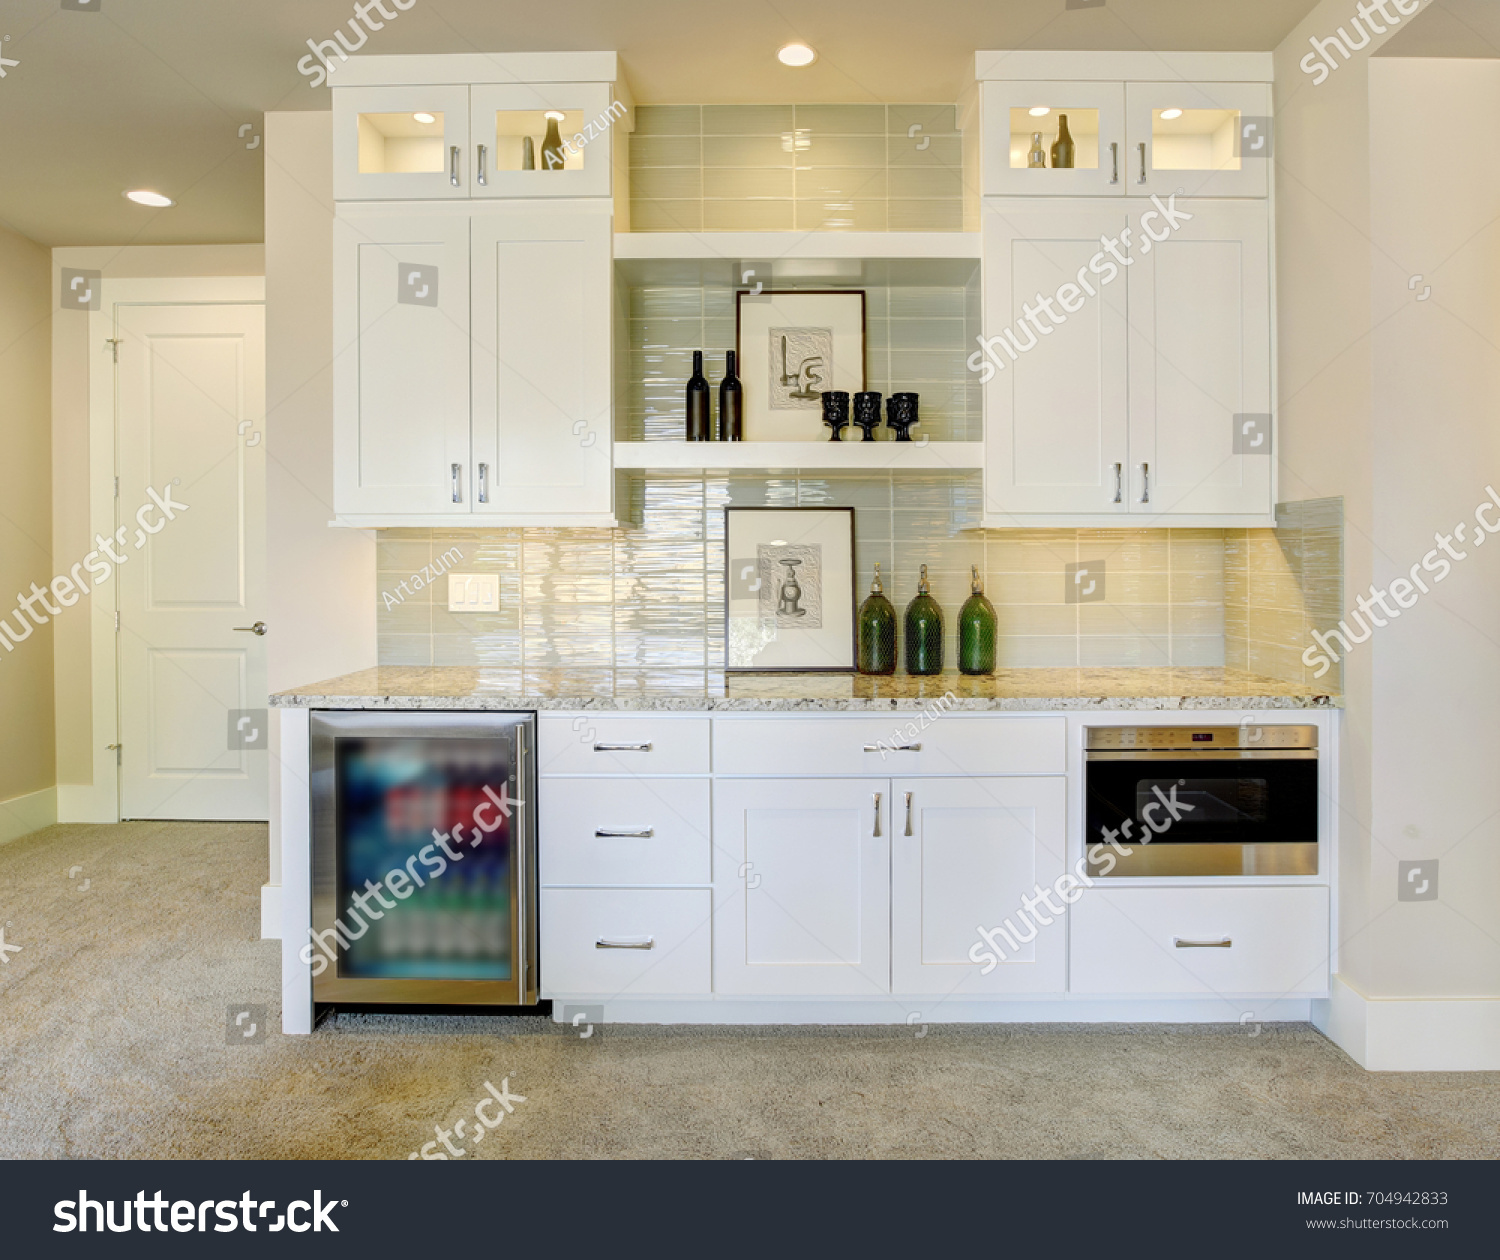 Wet Bar With White Cabinets Fitted With A Glass Door Beverage Fridge,  Granite Counter Top